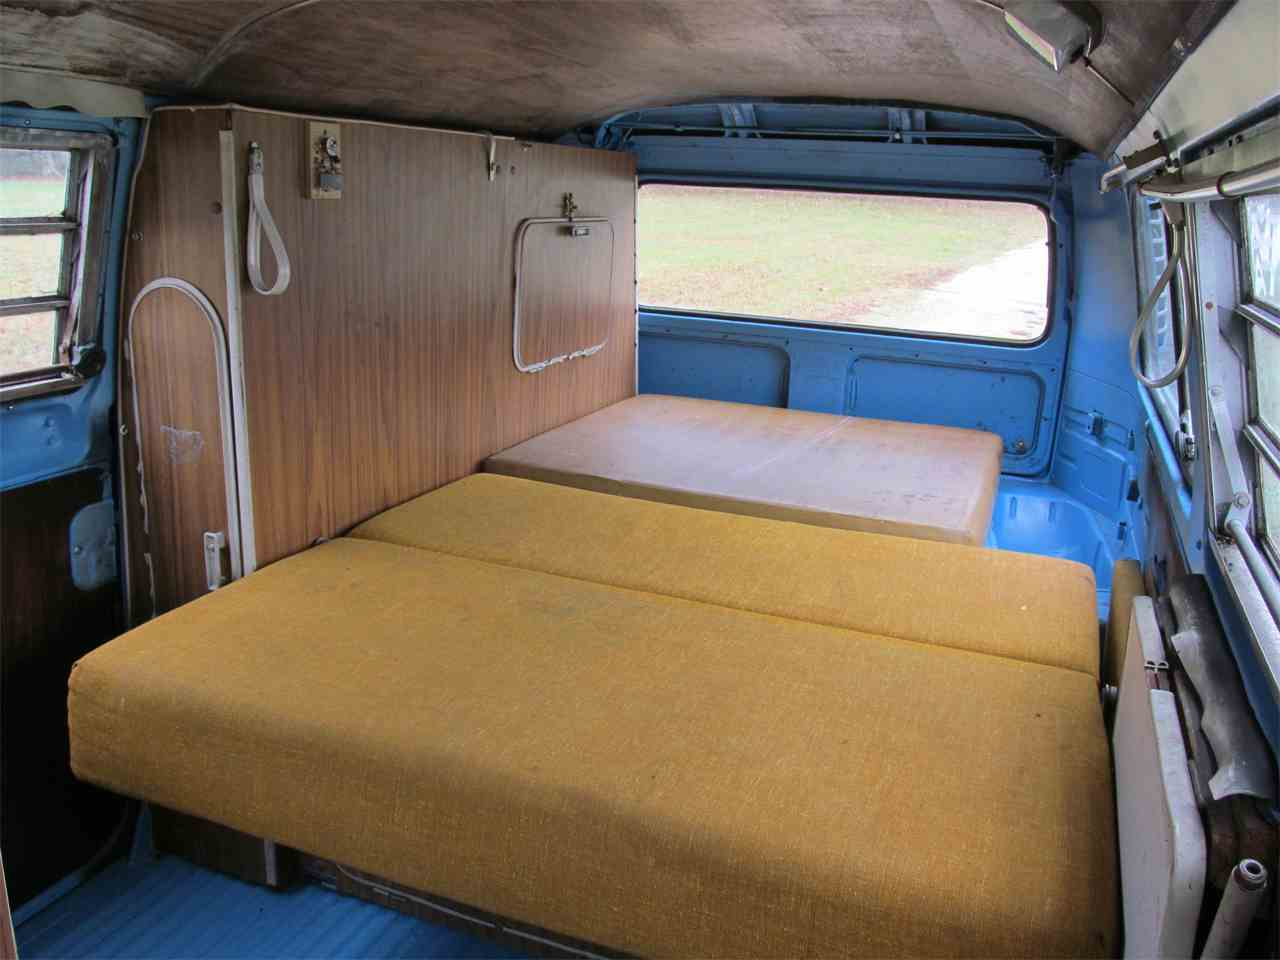 Large Picture of 1972 Volkswagen Bus located in Fayetteville Georgia - $8,900.00 - MAIP